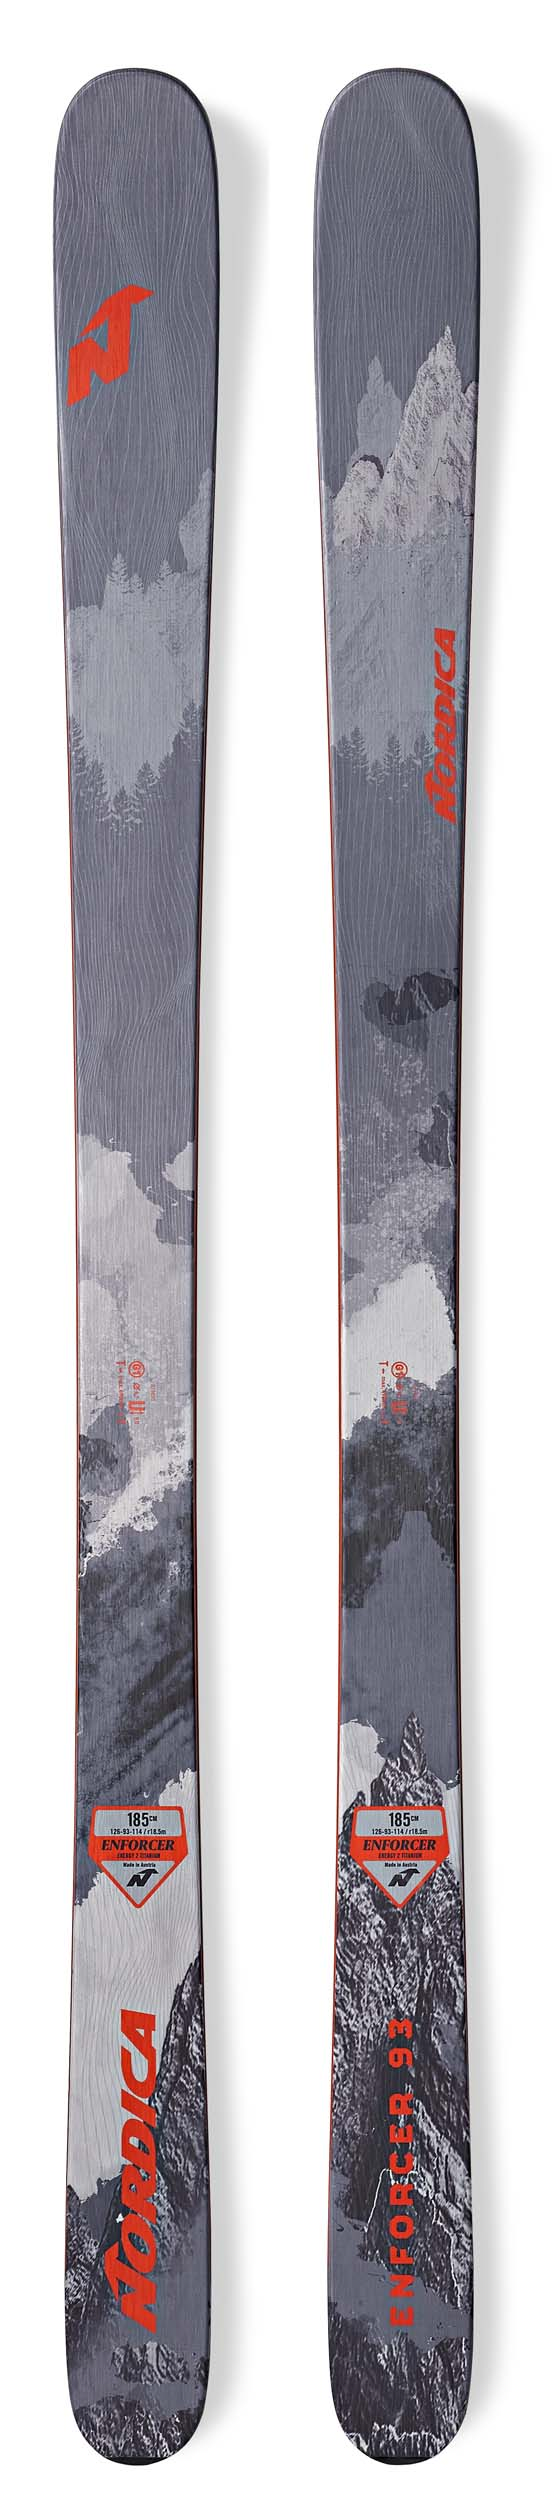 Nordica 2019 Enforcer 93 Skis (Without Bindings / Flat) NEW !! 169,177,185,193cm